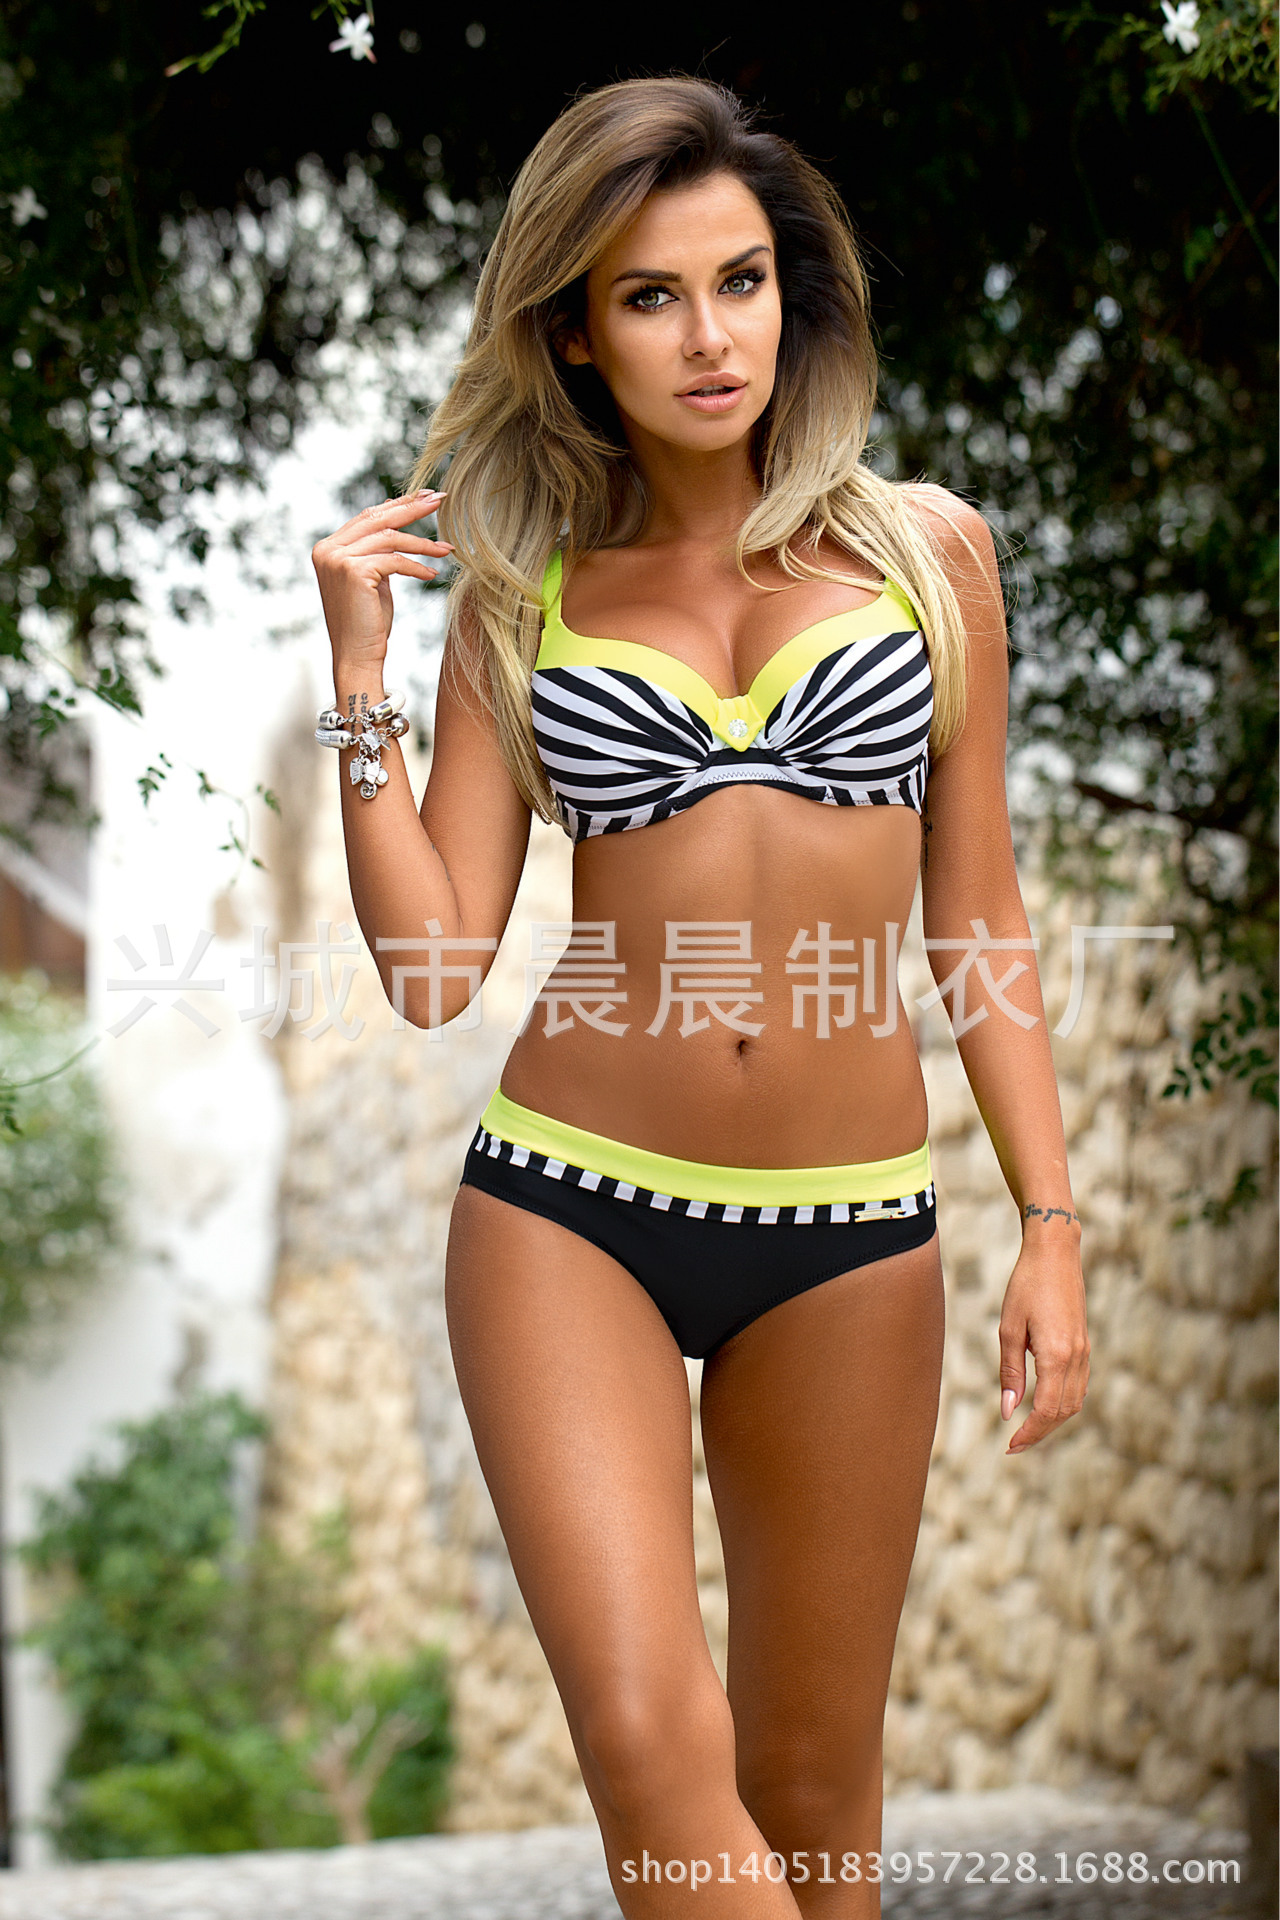 Sexy NylonSwimsuit (040 Striped Yellow-L)NHCC0492-040 Striped Yellow-L